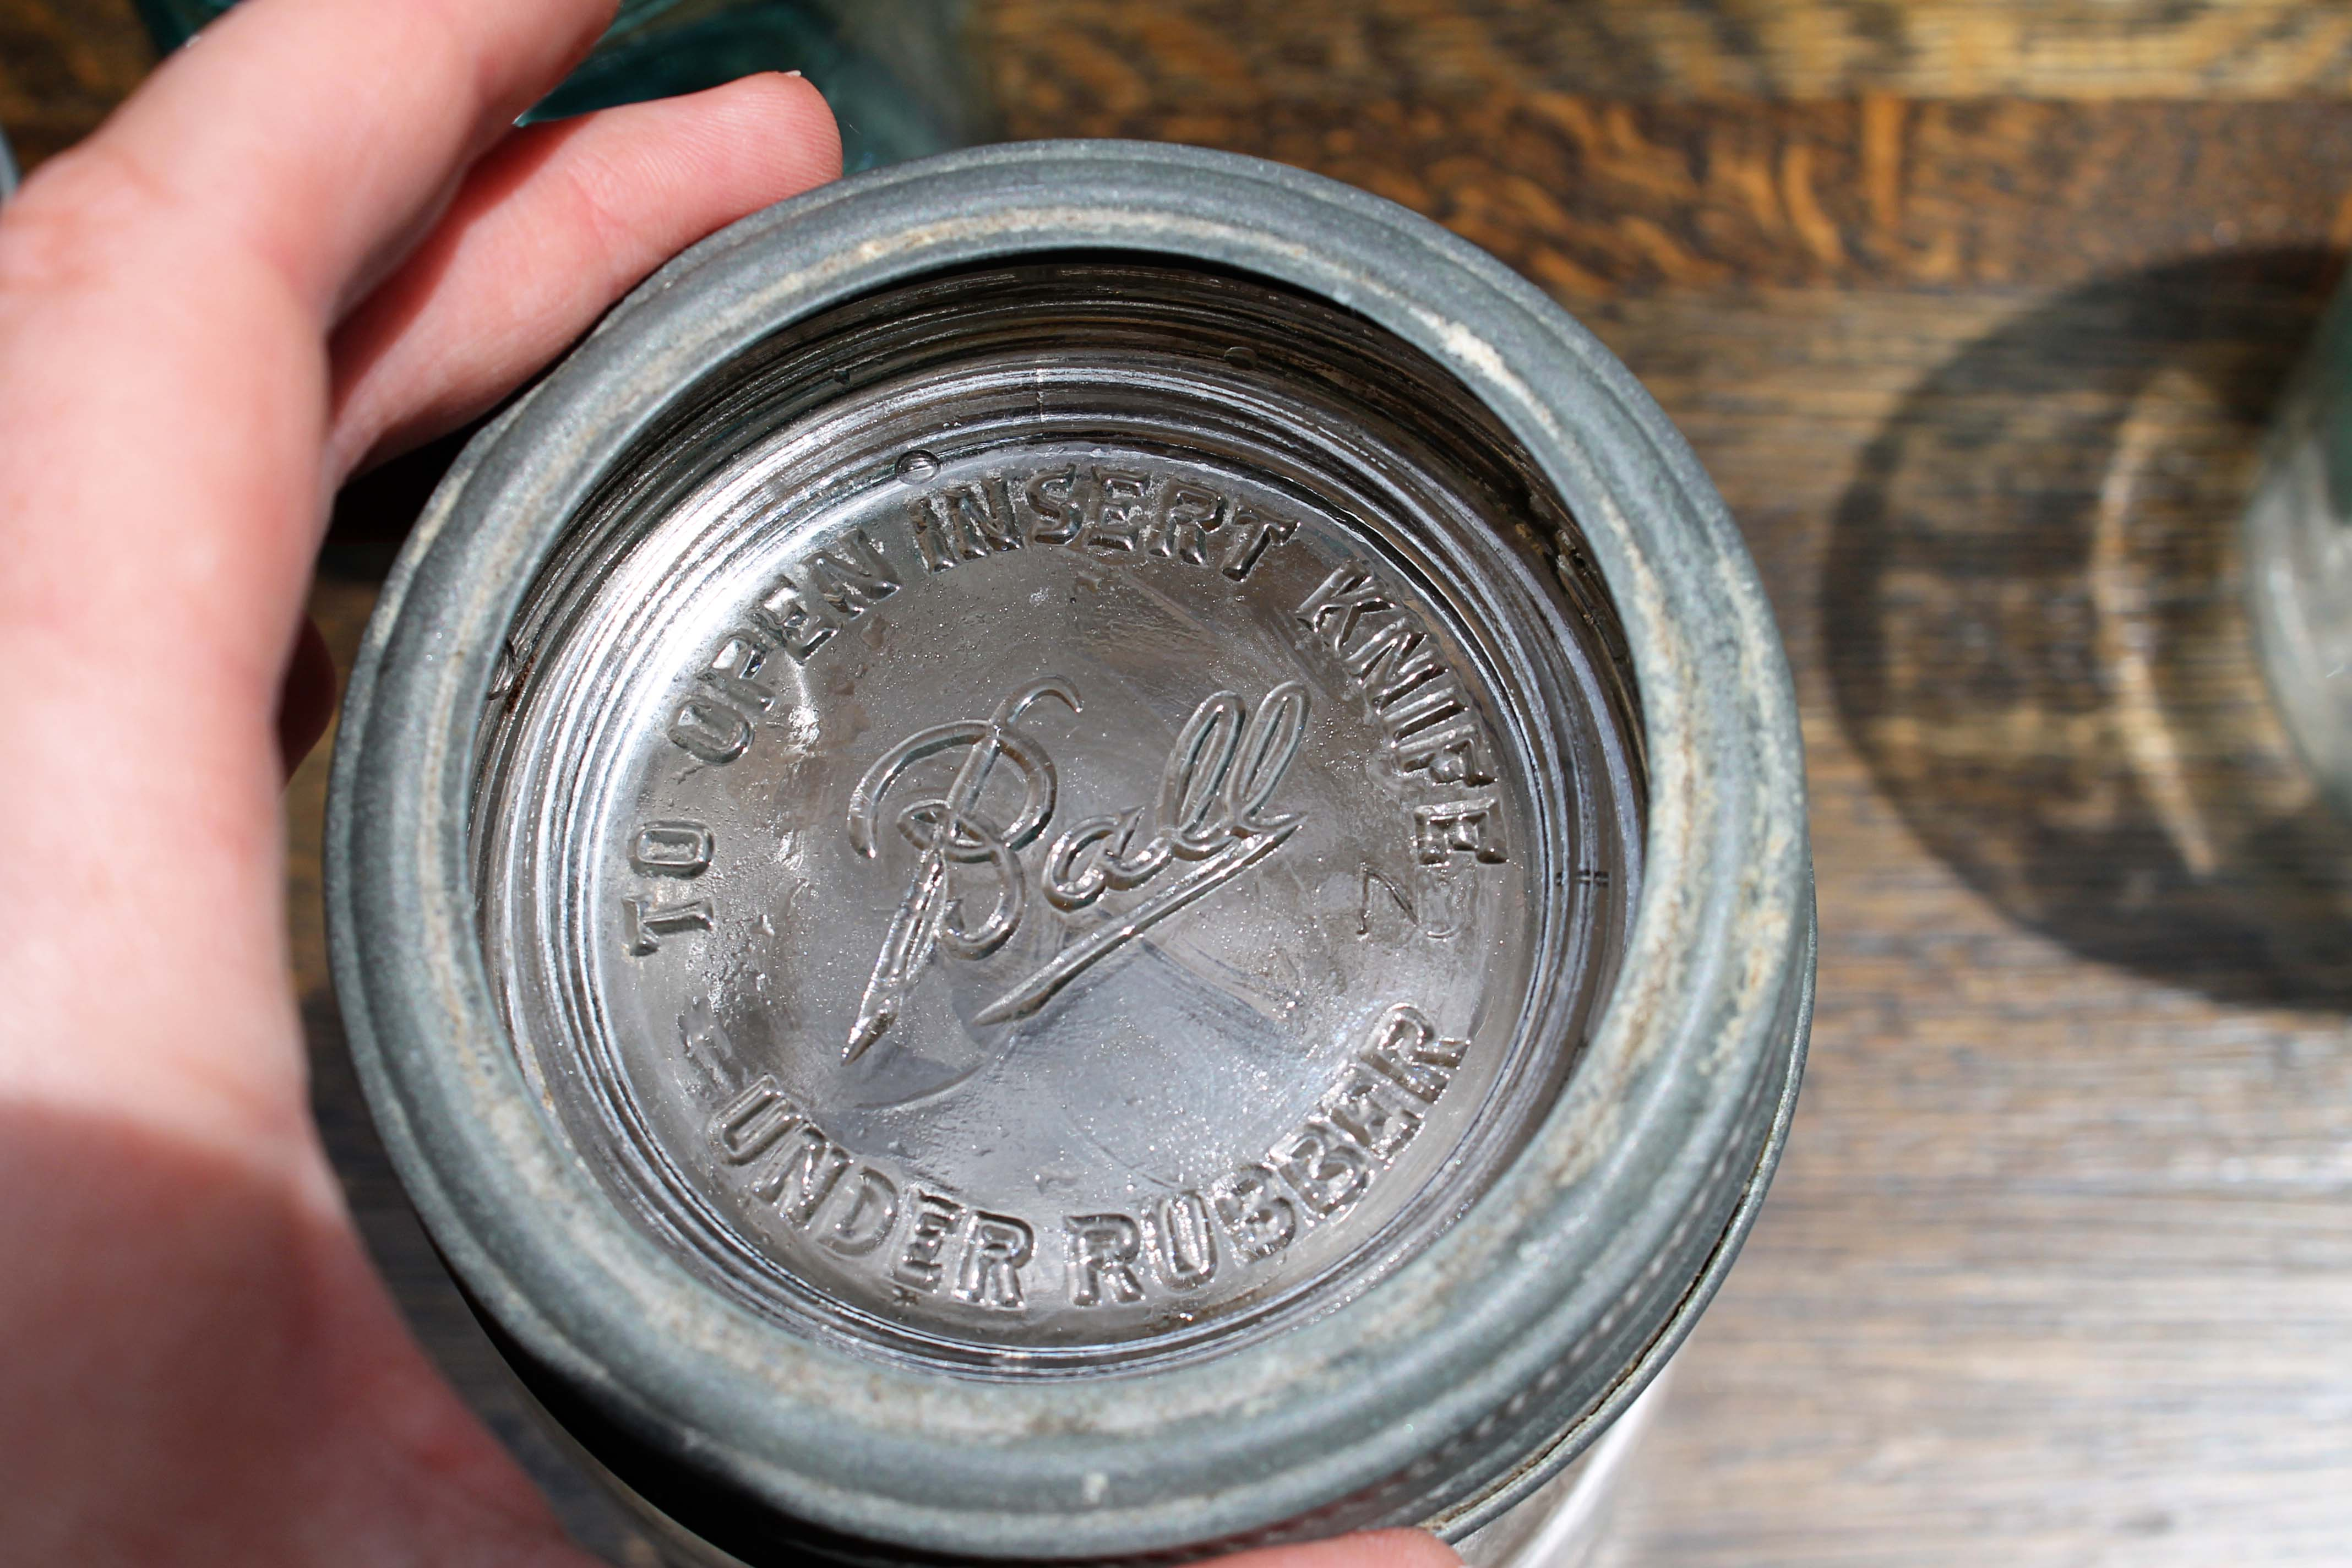 Clear class lid on a Kerr mason jar